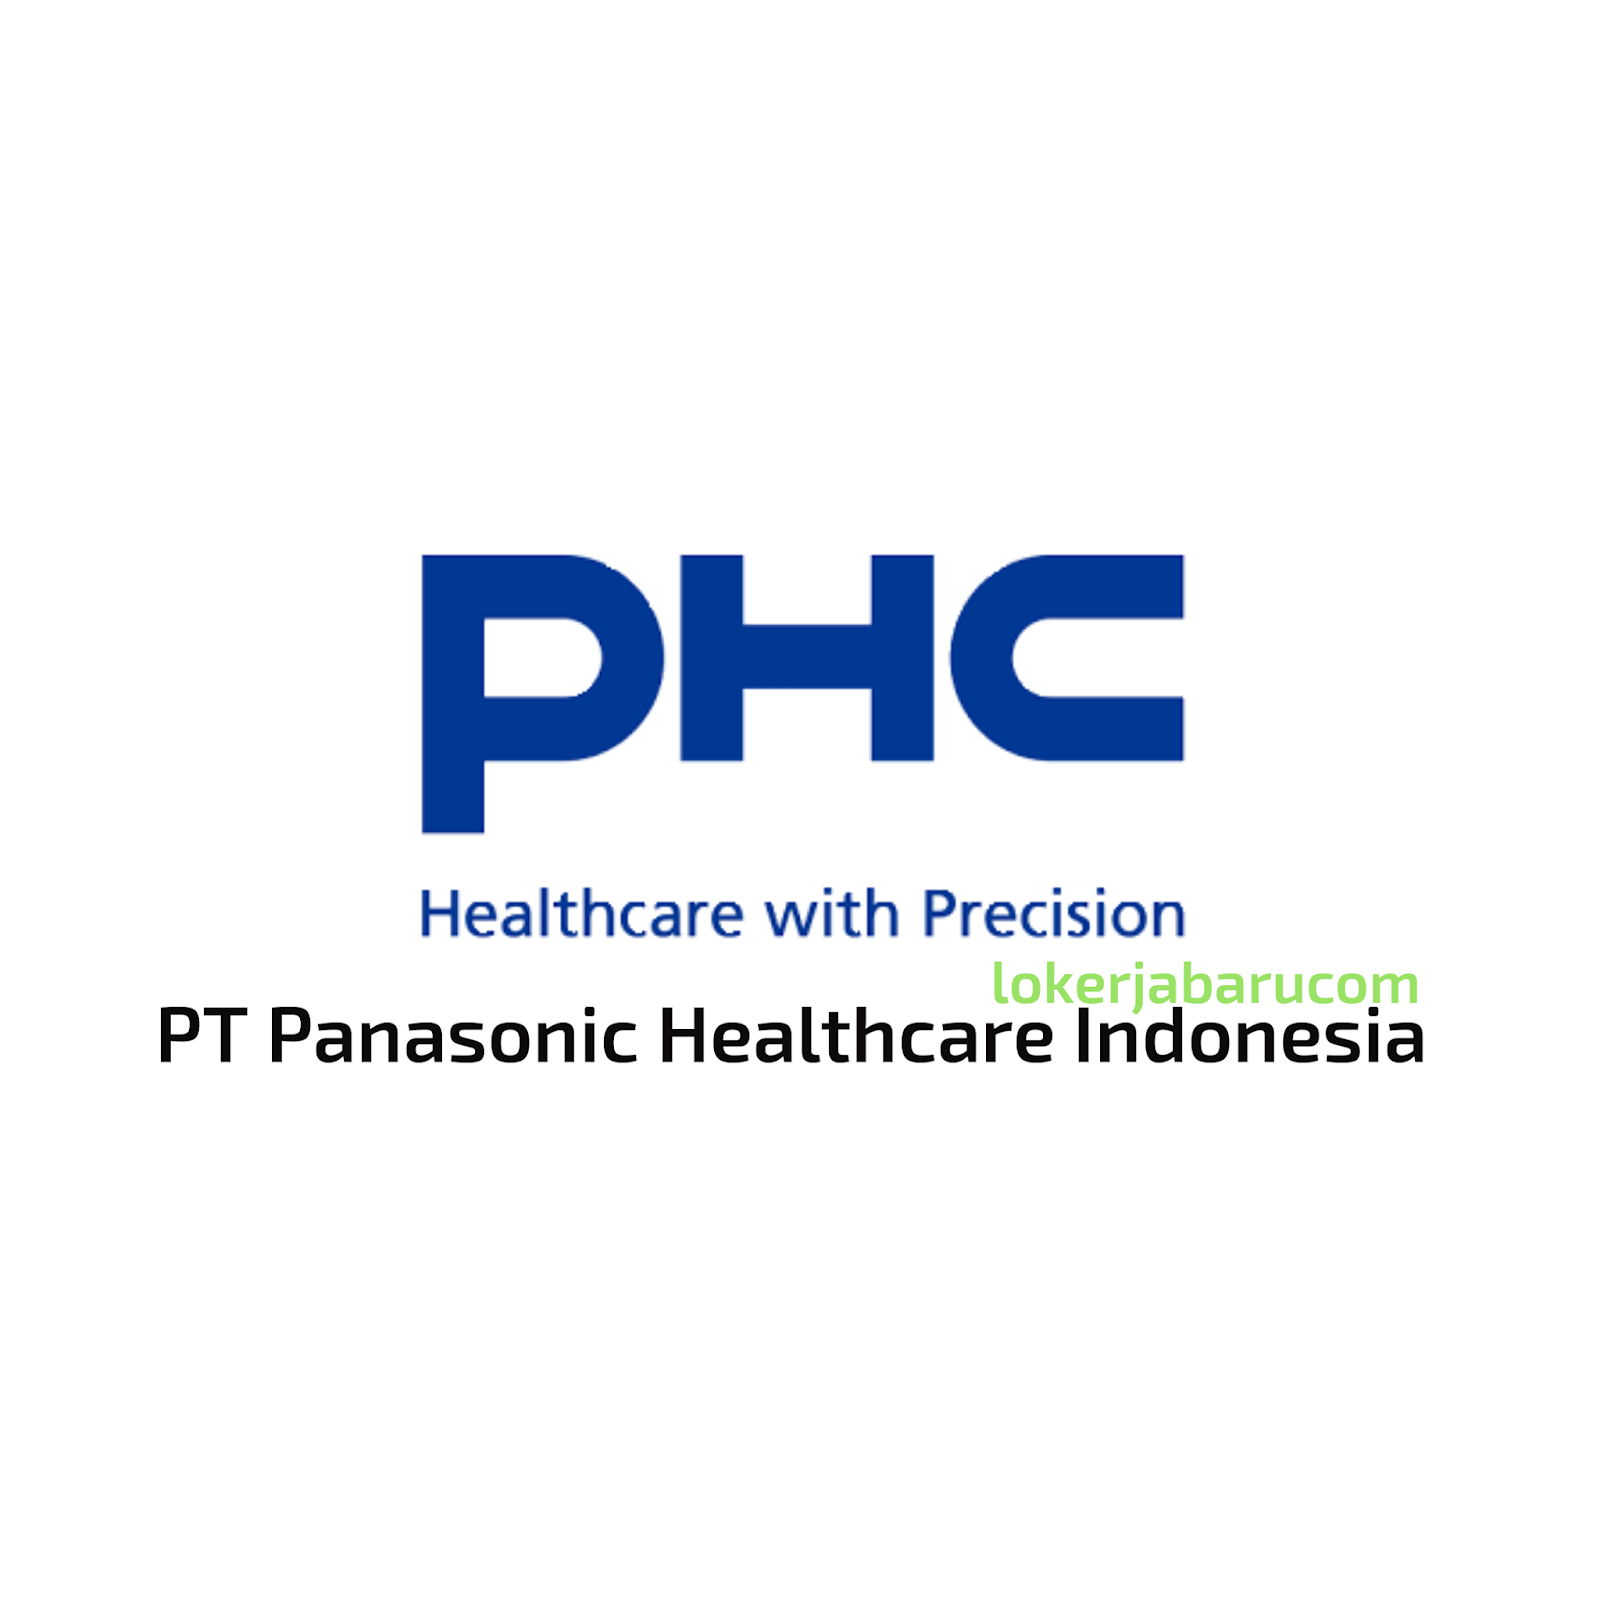 Pt Panasonic Healthcare Indonesia